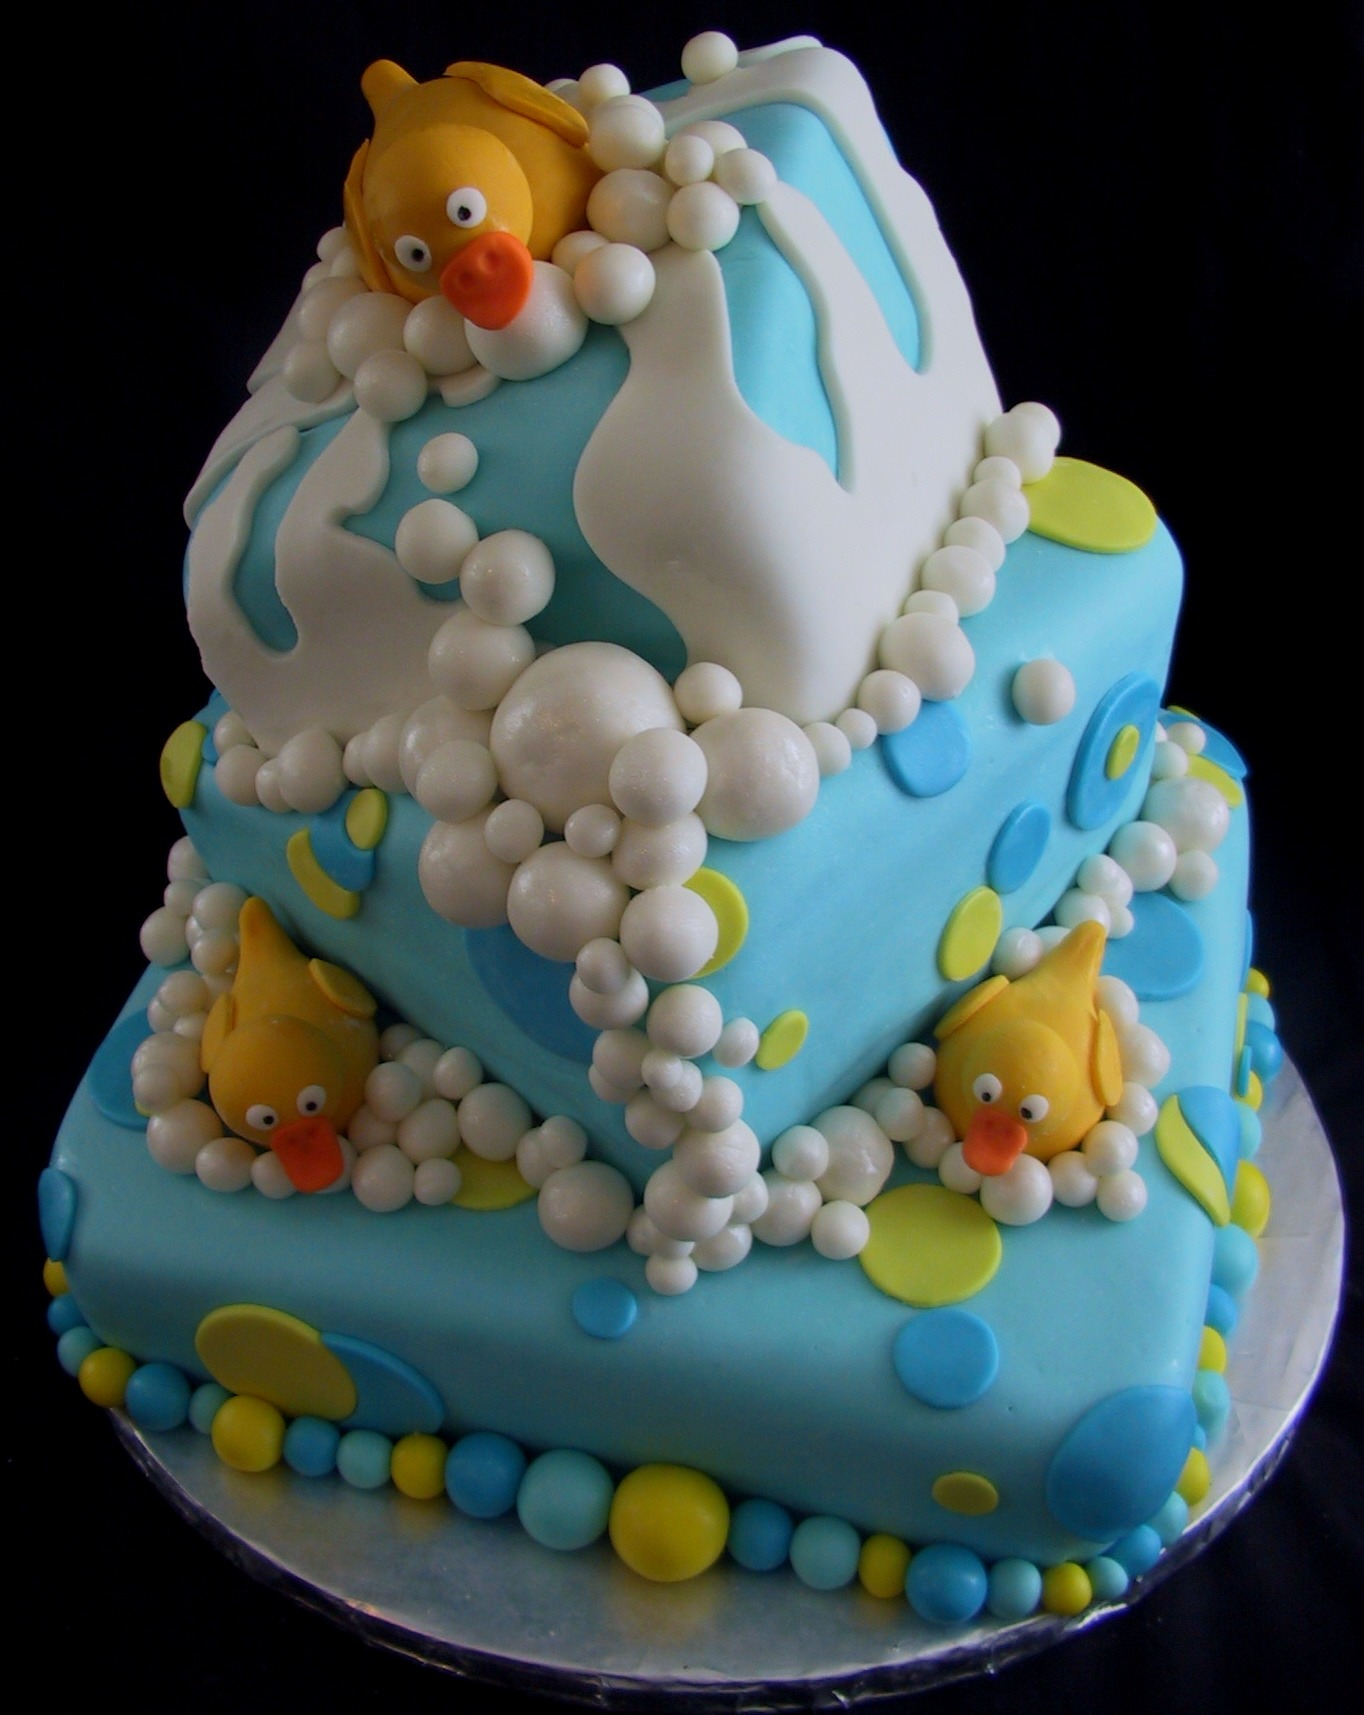 Bday Cake Designs For Baby Boy : 70 Baby Shower Cakes and Cupcakes Ideas